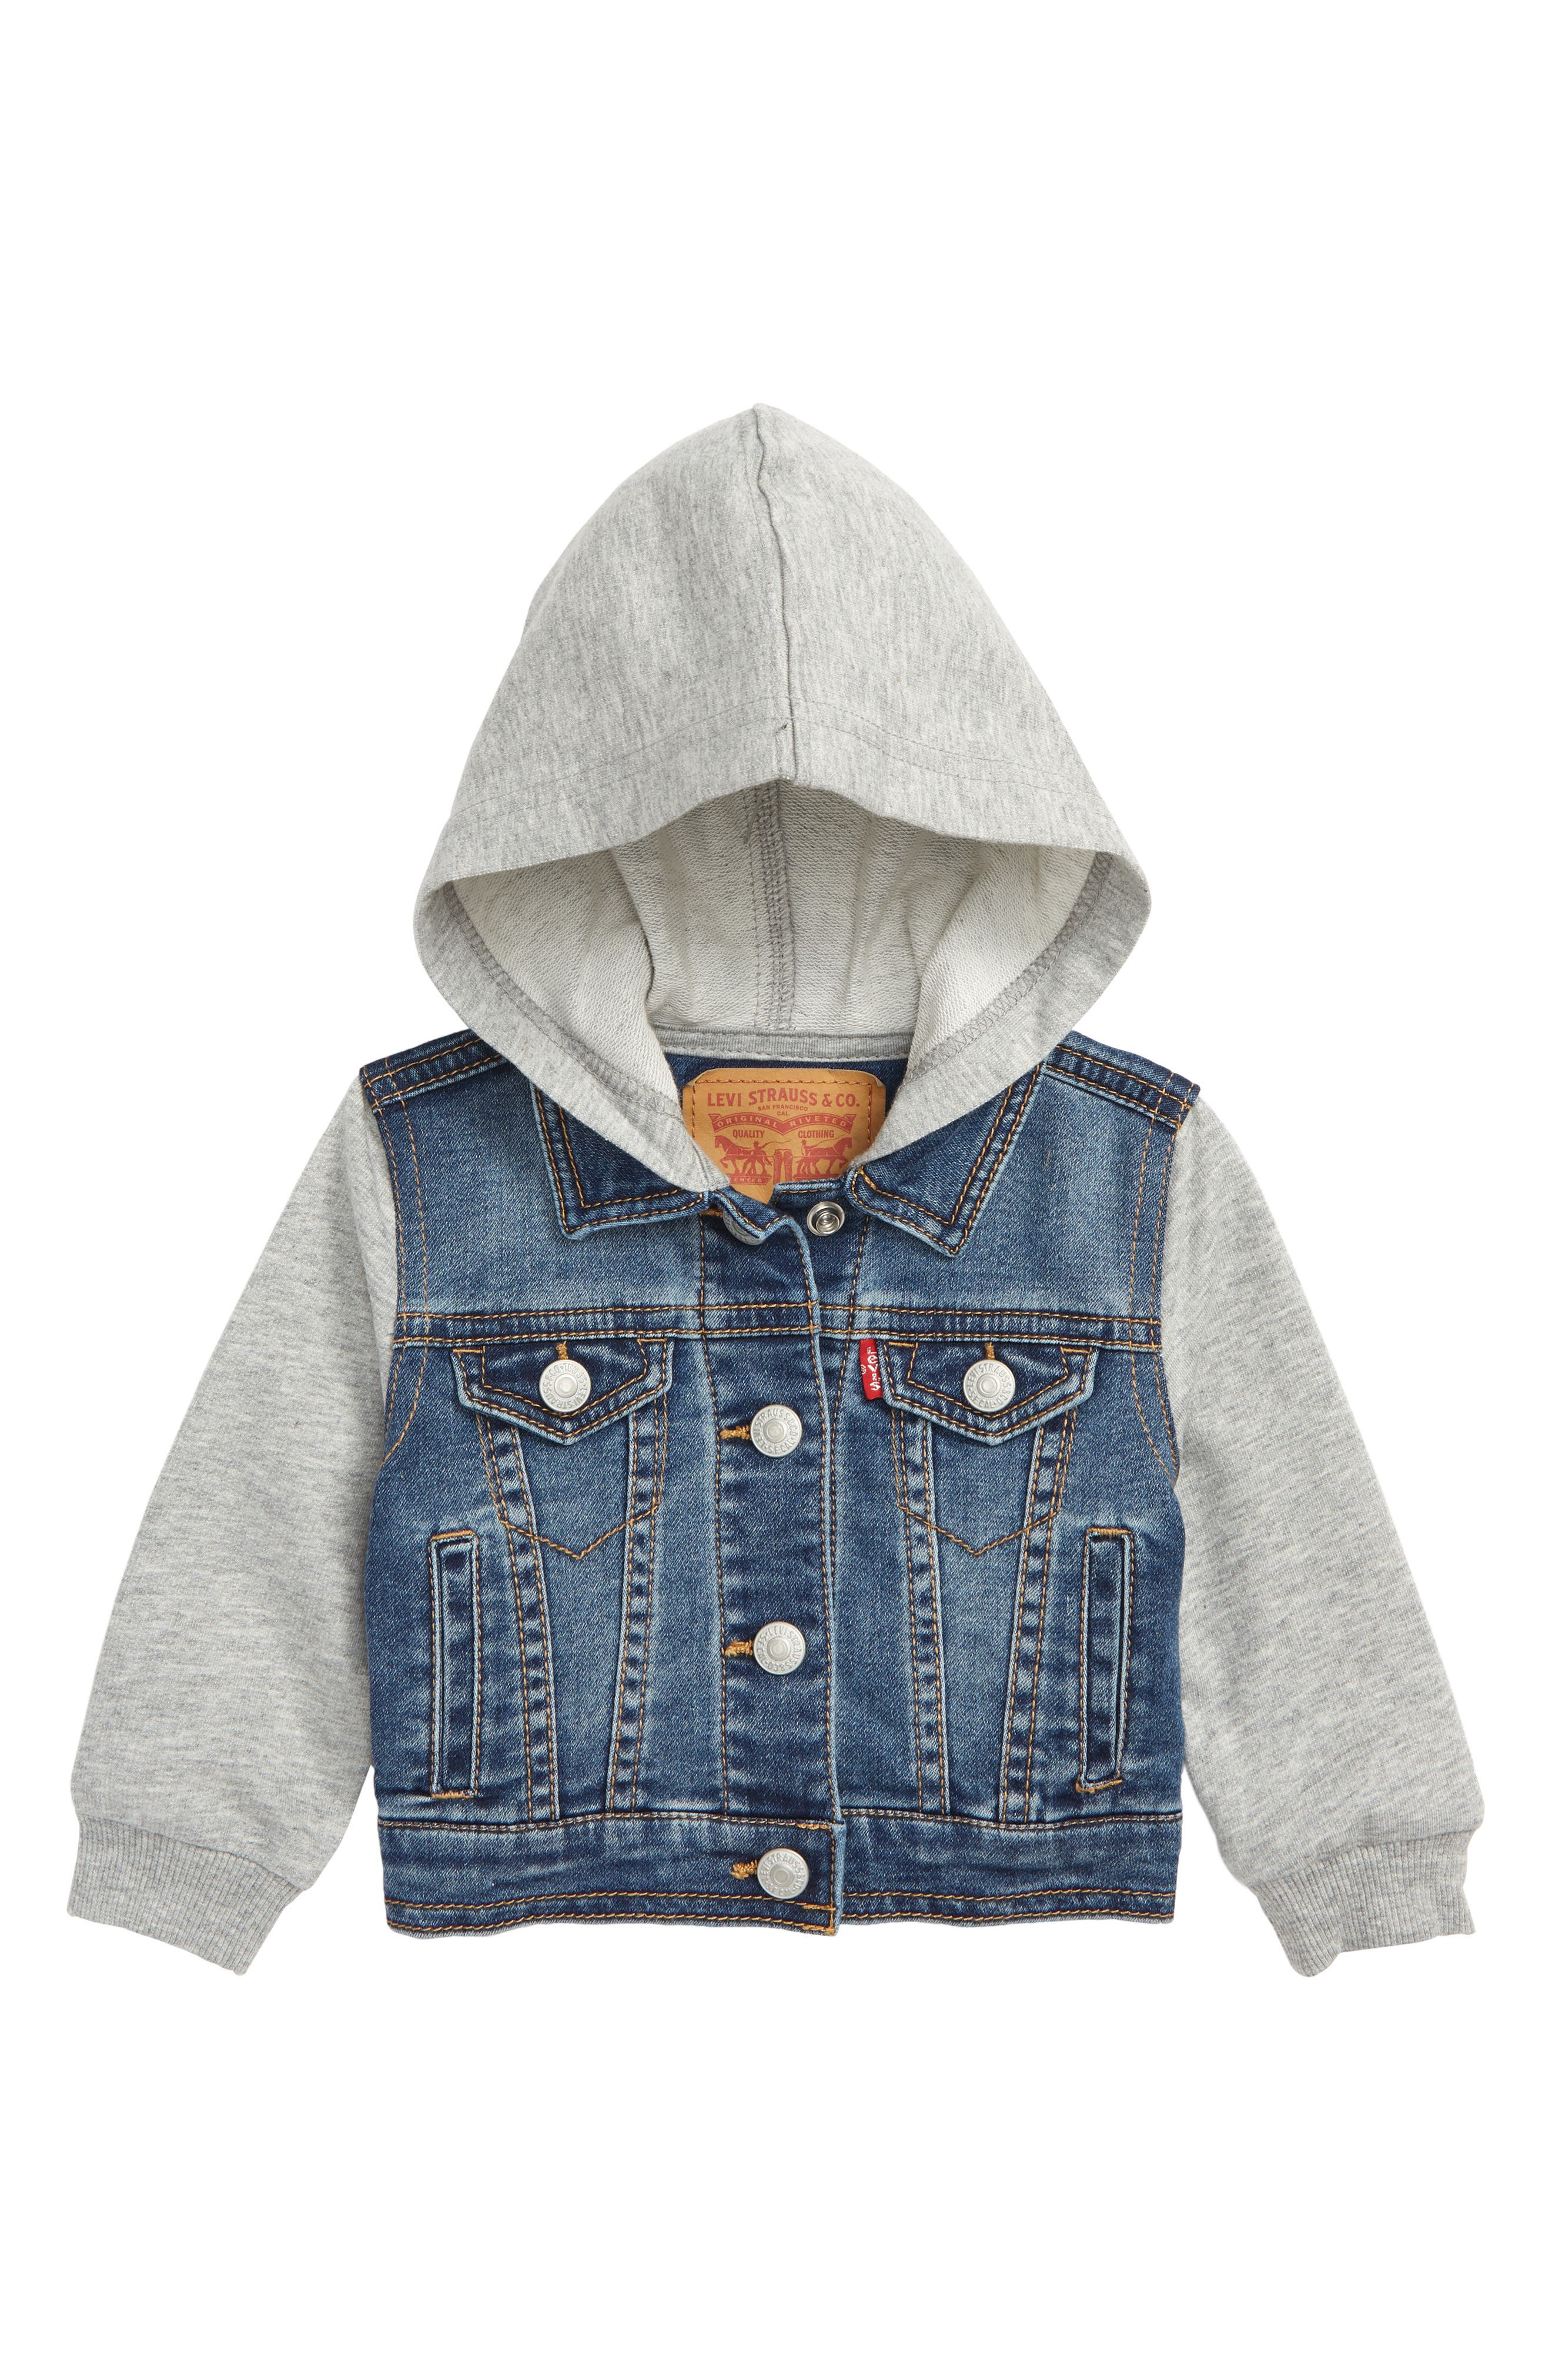 LEVI'S<SUP>®</SUP>, Levi's<sup>®</sup> Indigo Hooded Trucker Jacket, Main thumbnail 1, color, 452